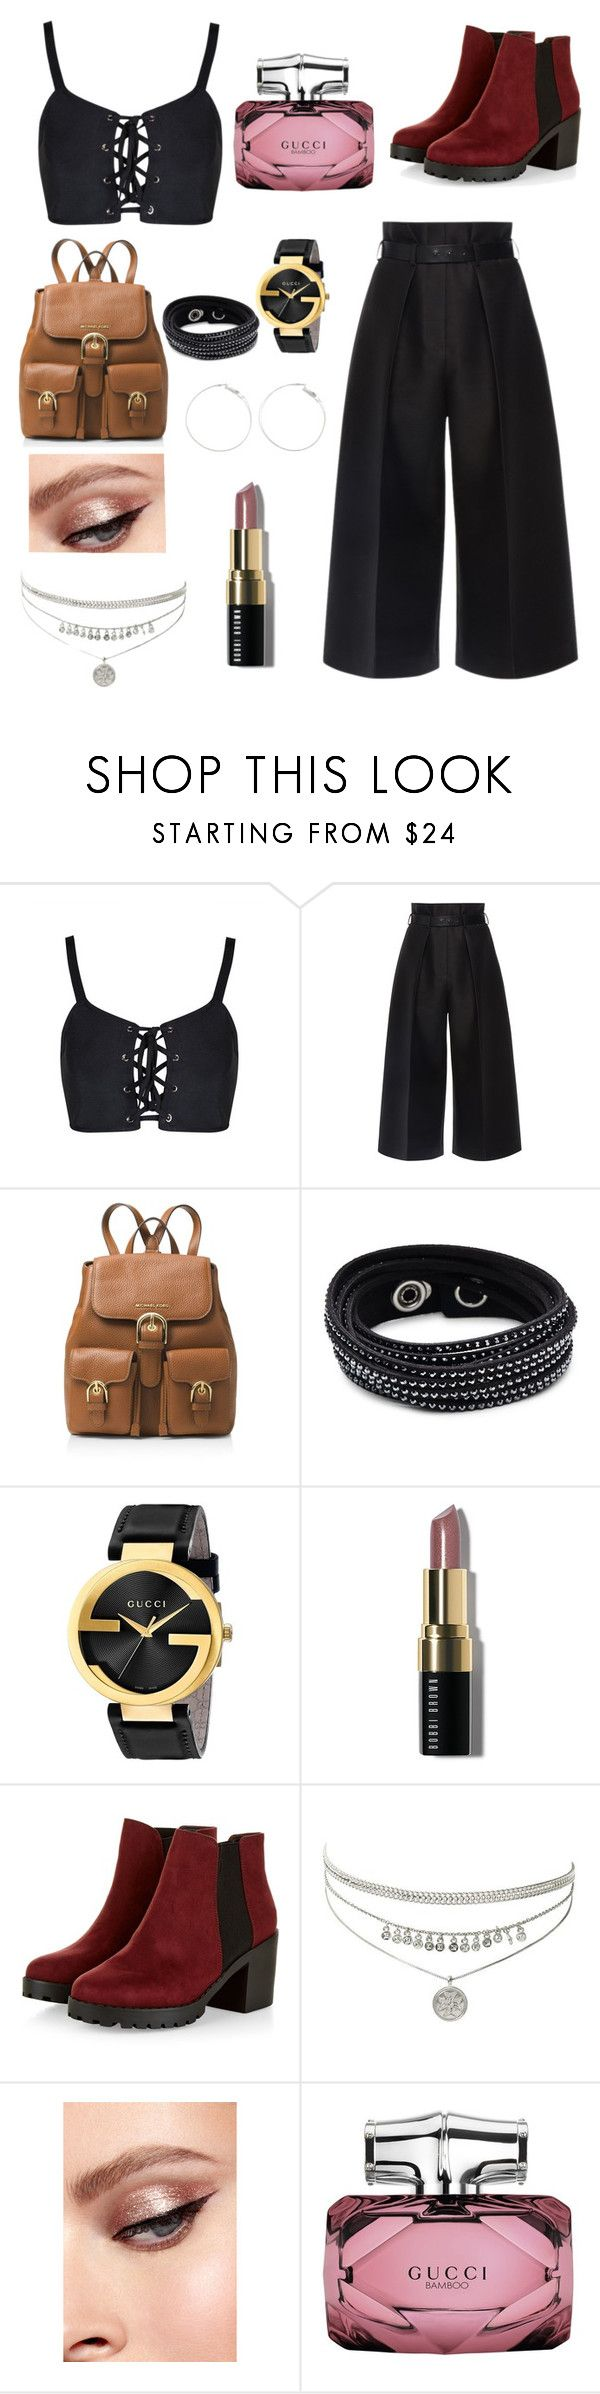 """""""Maggie Lindemann"""" by a1-helen-1a on Polyvore featuring Martin Grant, MICHAEL Michael Kors, Swarovski, Gucci and Bobbi Brown Cosmetics"""